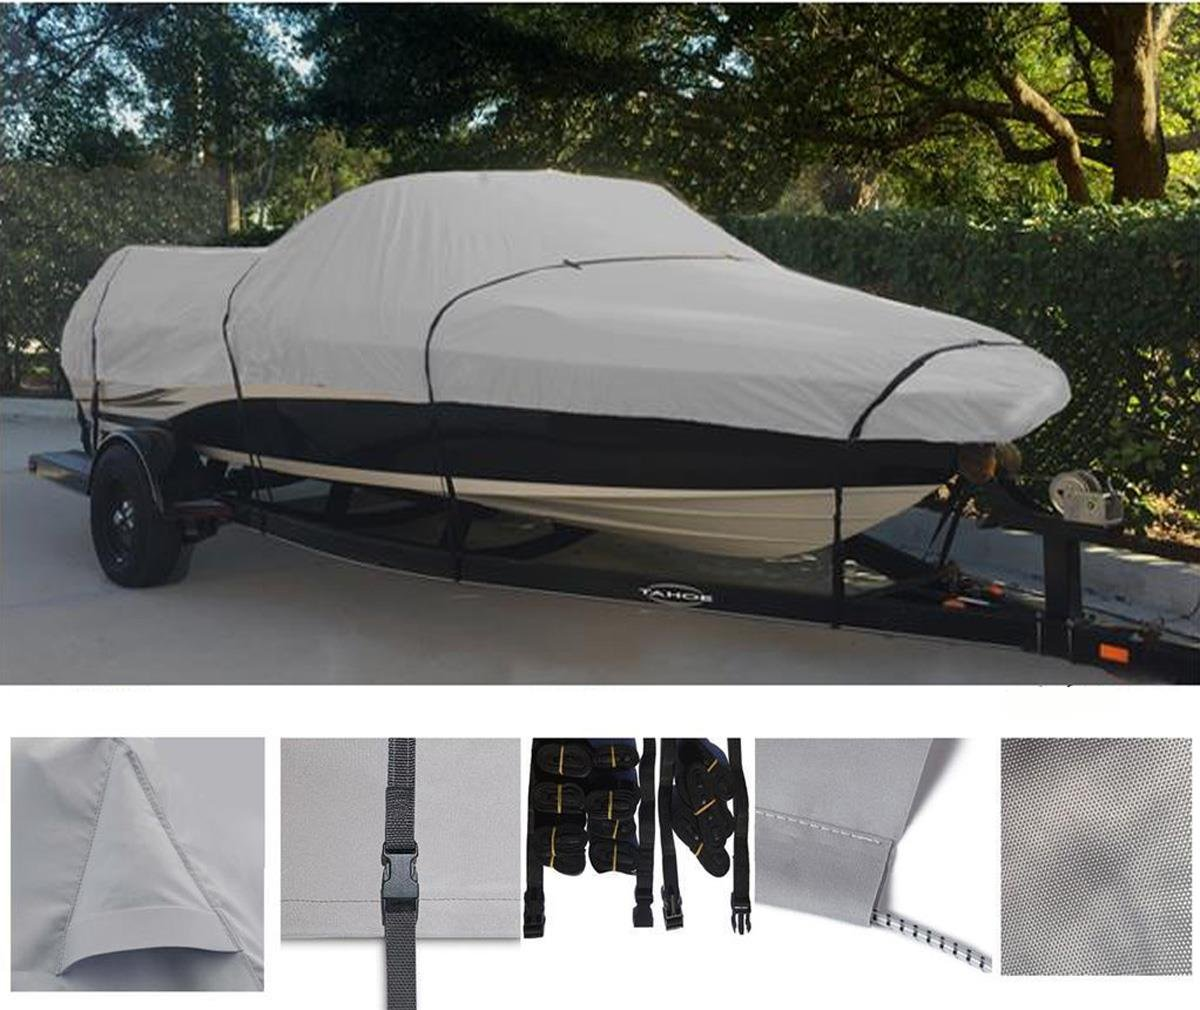 GREY, STORAGE, TRAVEL, MOORING BOAT COVER FOR GLASSTREAM 172 CUTLESS O/B 1987 by SBU